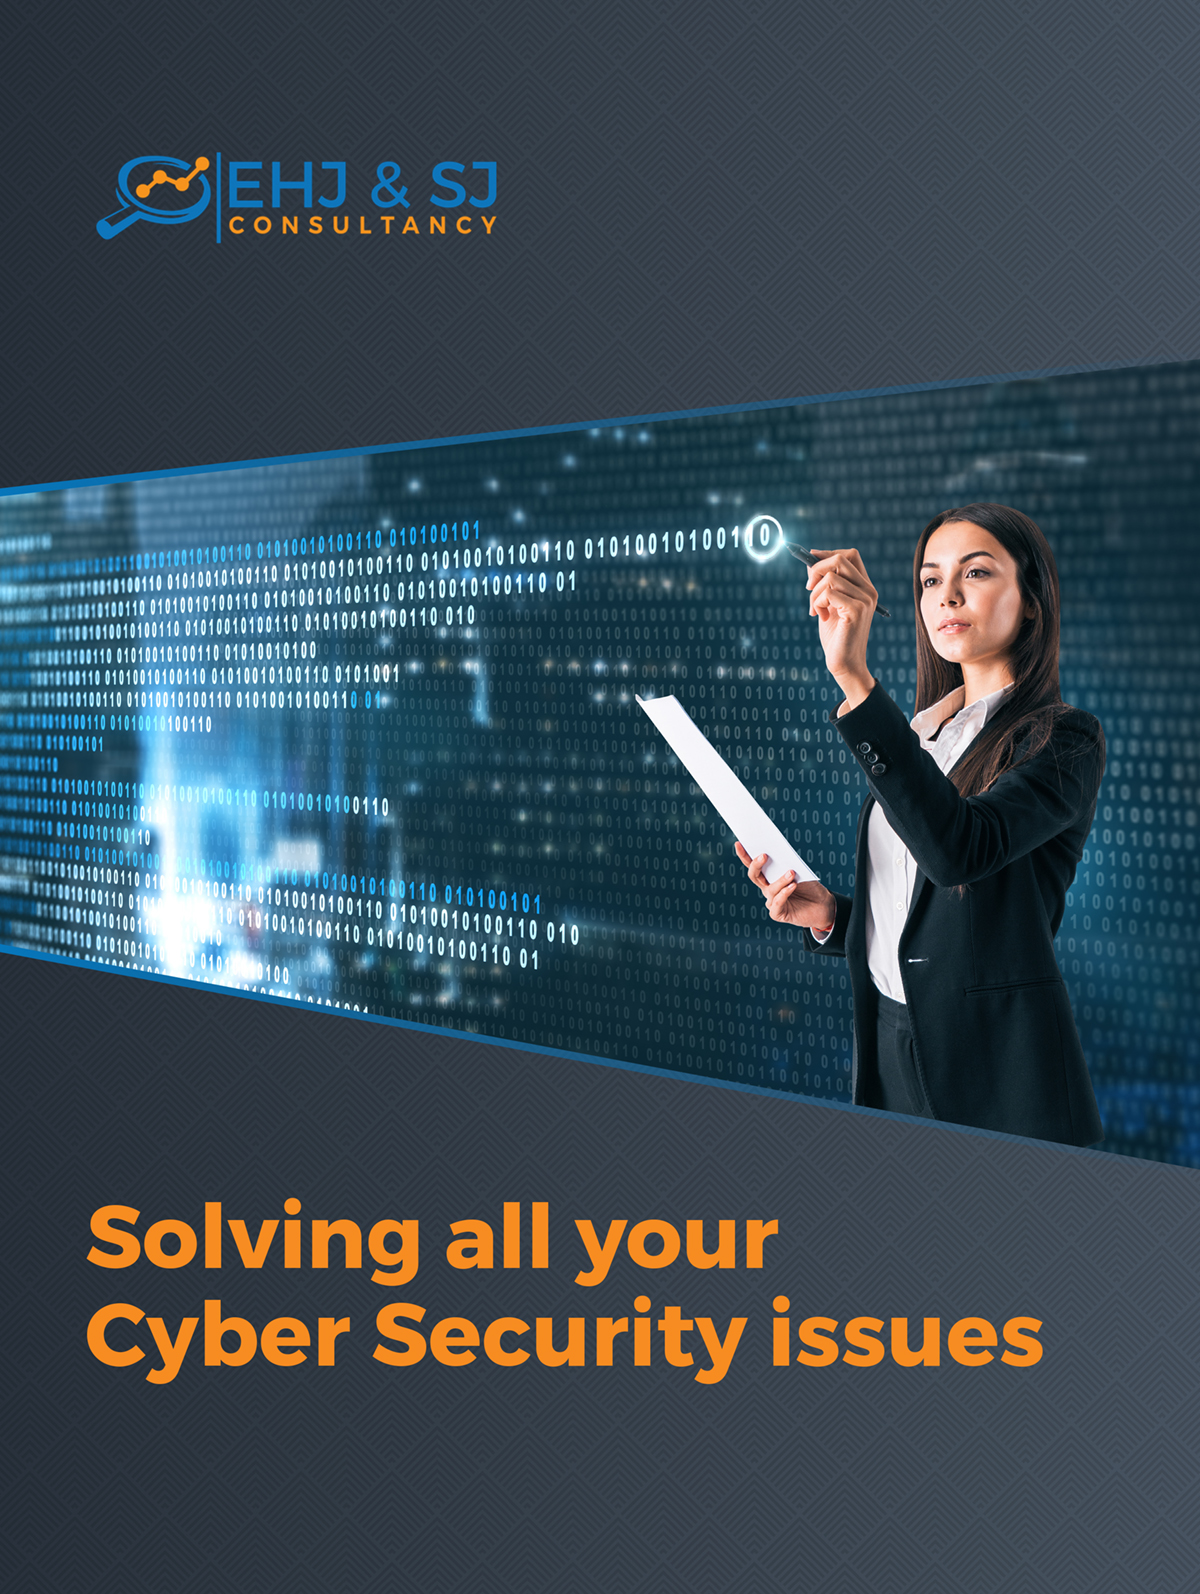 Cyber Security issues, EHJ & SJ consultancy